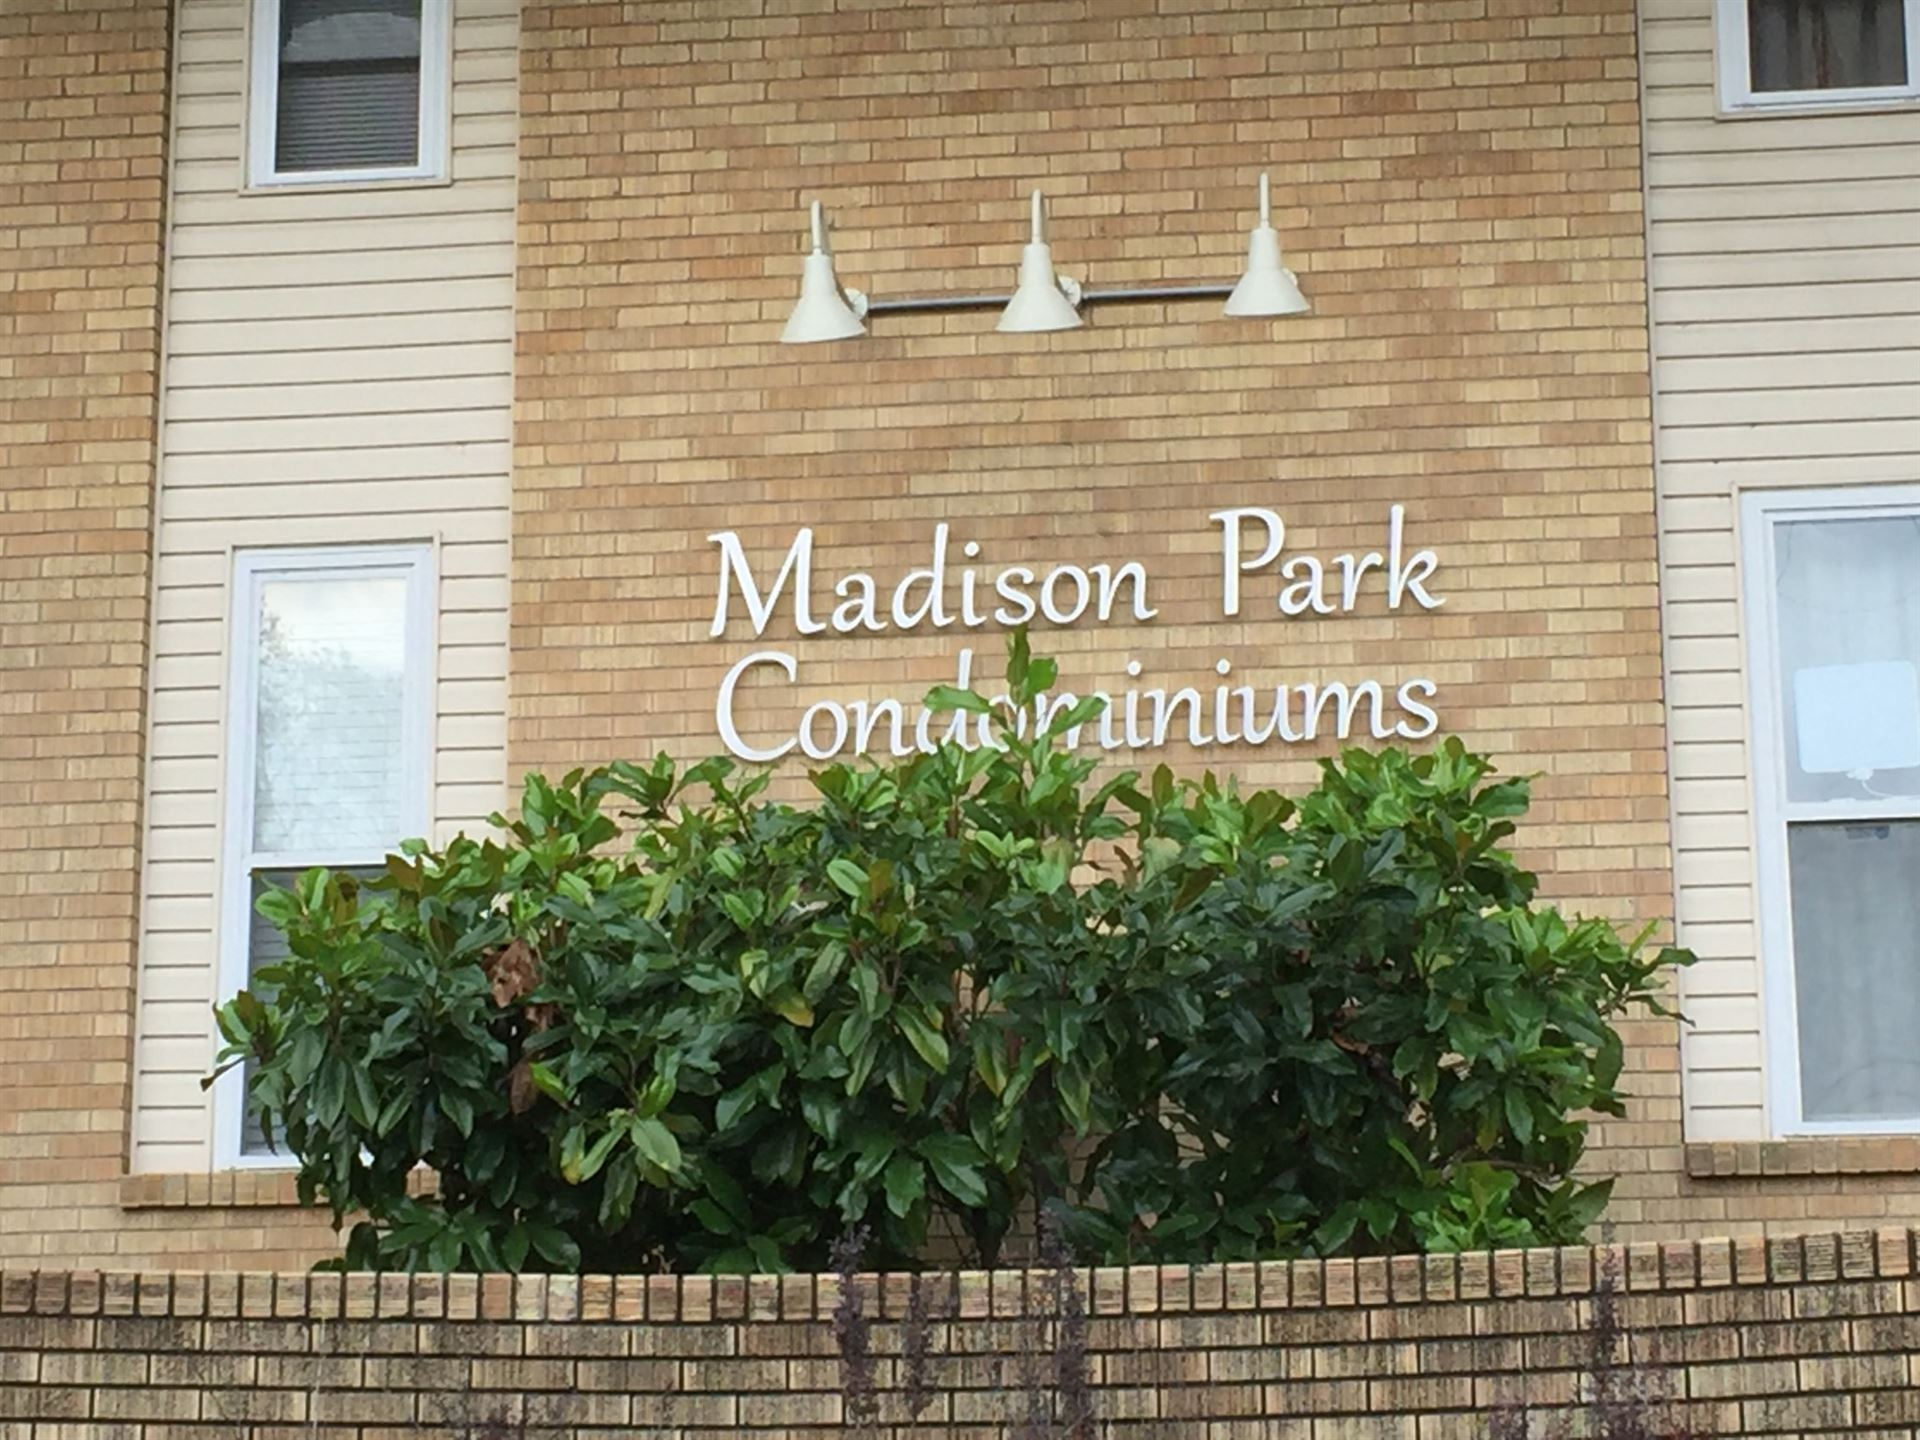 555 Dupont Ave N #D90, Madison, TN 37115 - MLS#: 2231421